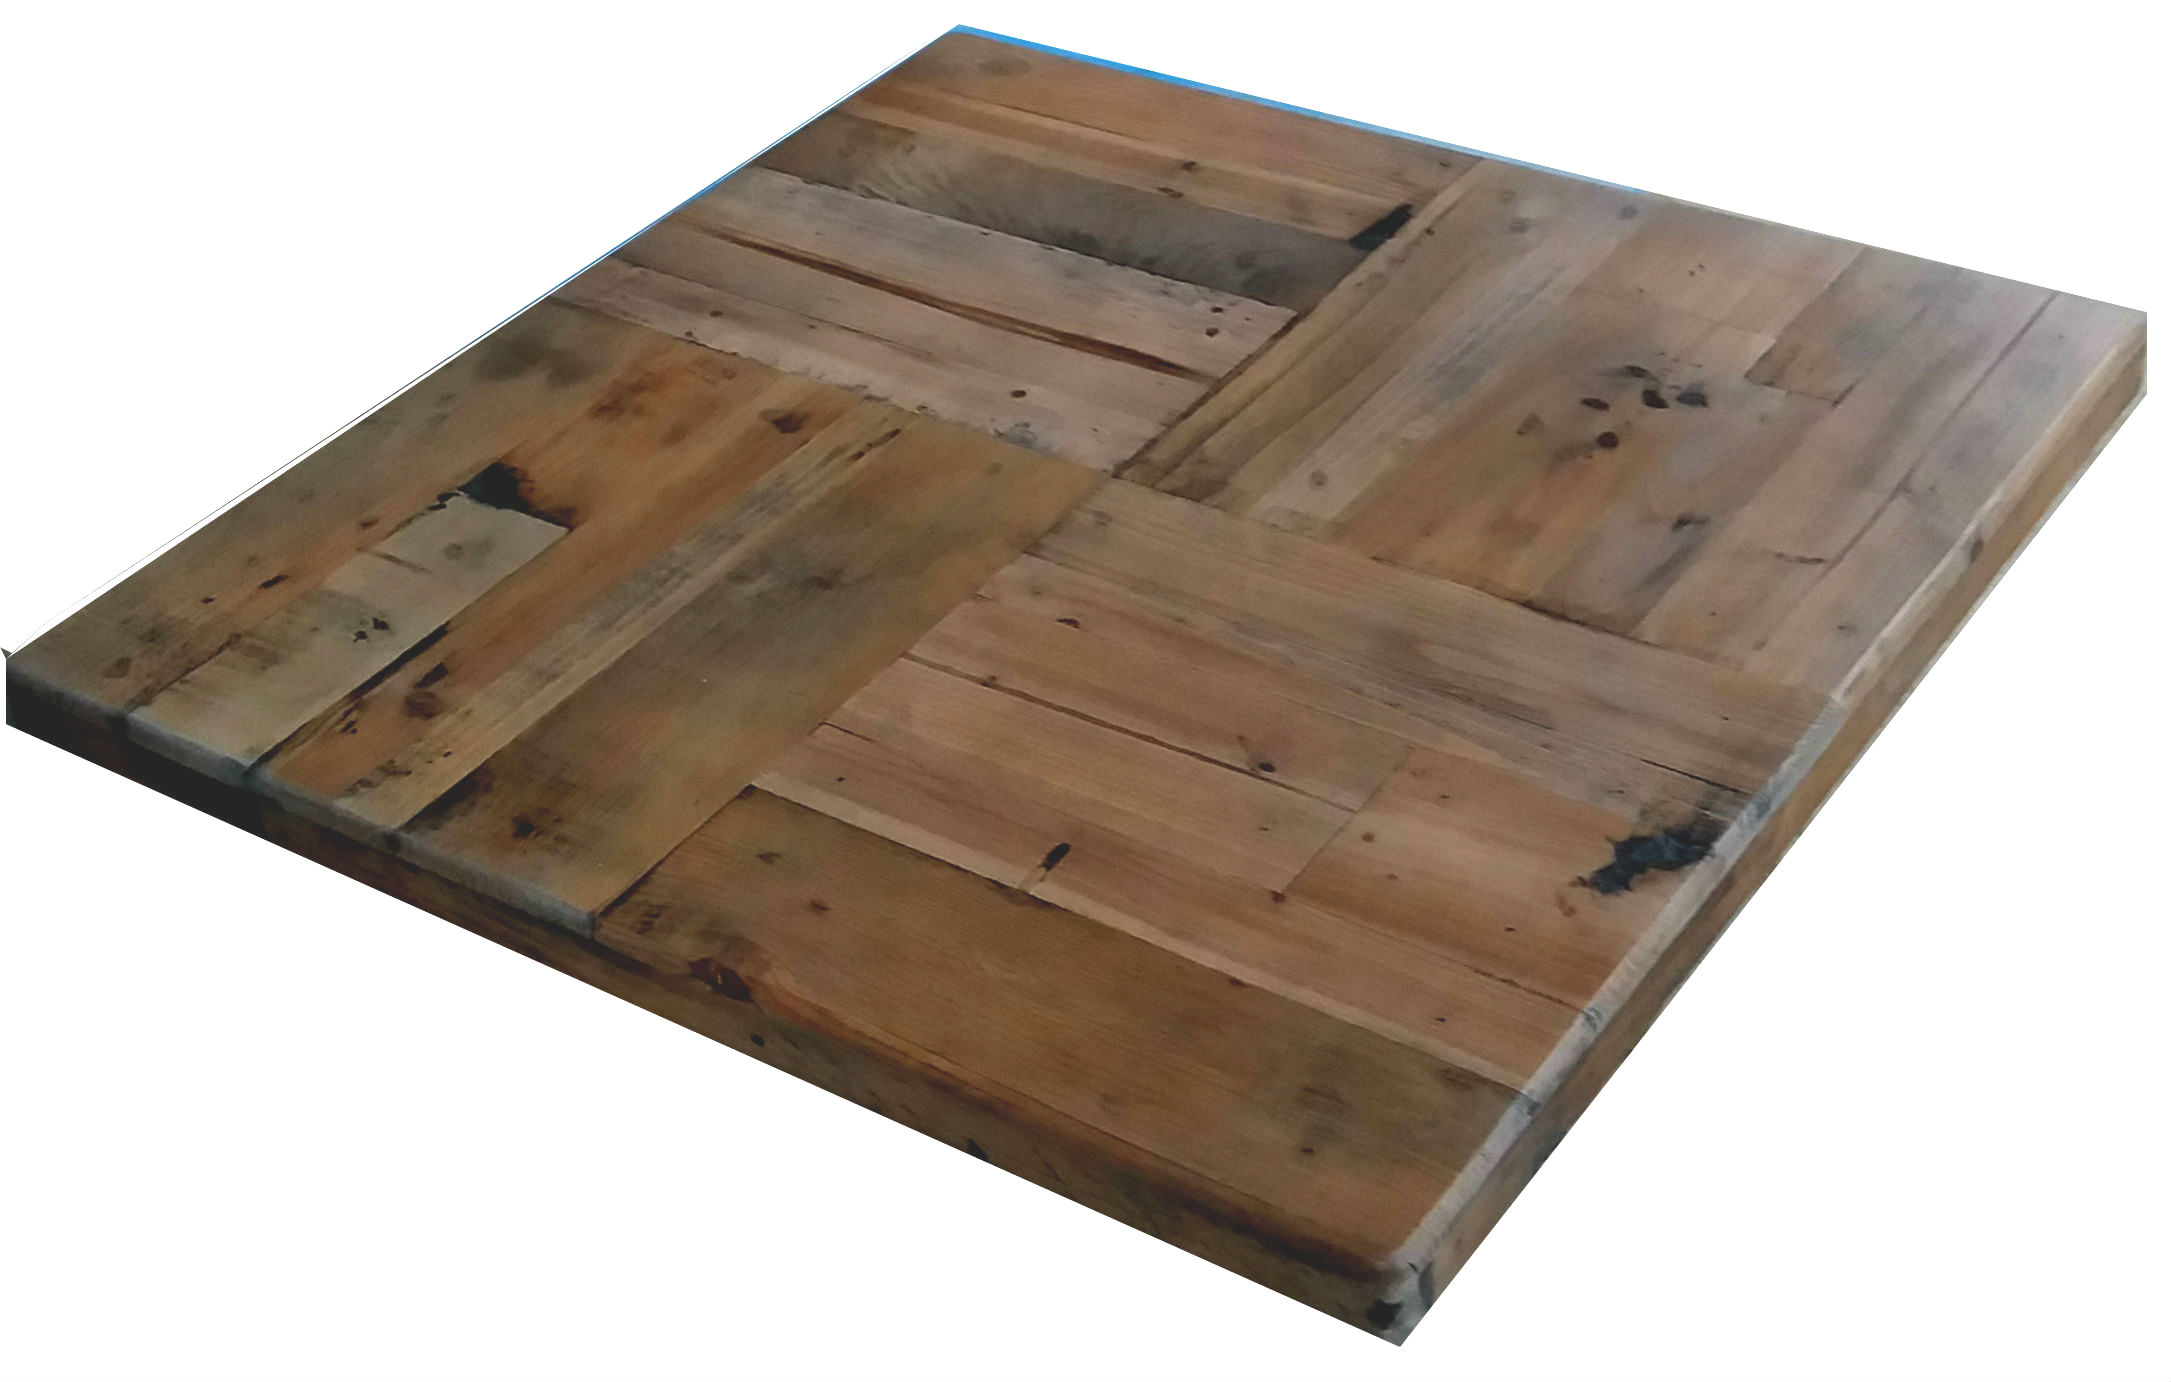 Reclaimed Wood Parquet Pattern Tabletops Restaurant Cafe Supplies Online